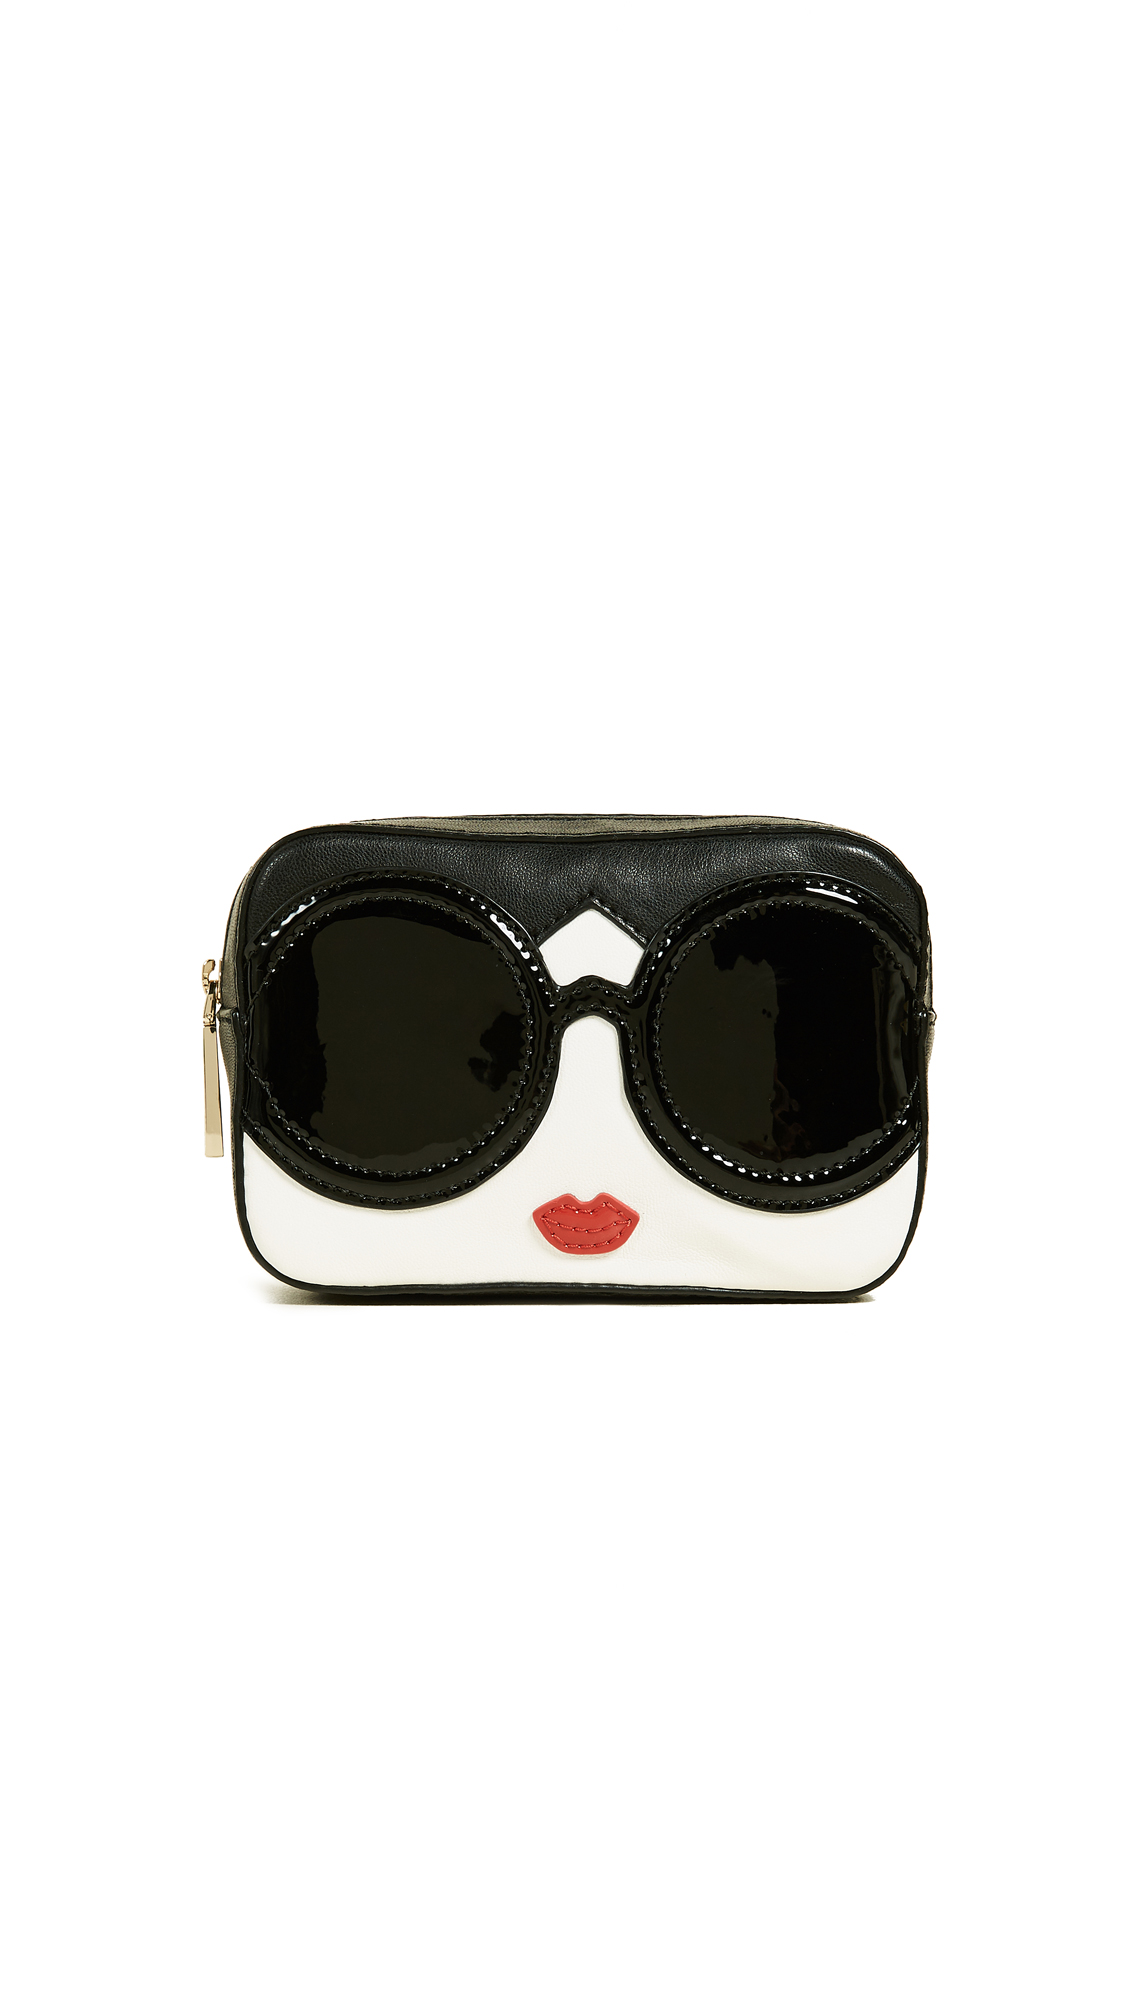 alice + olivia Stace Face Small Travel Cosmetic Case - Multi